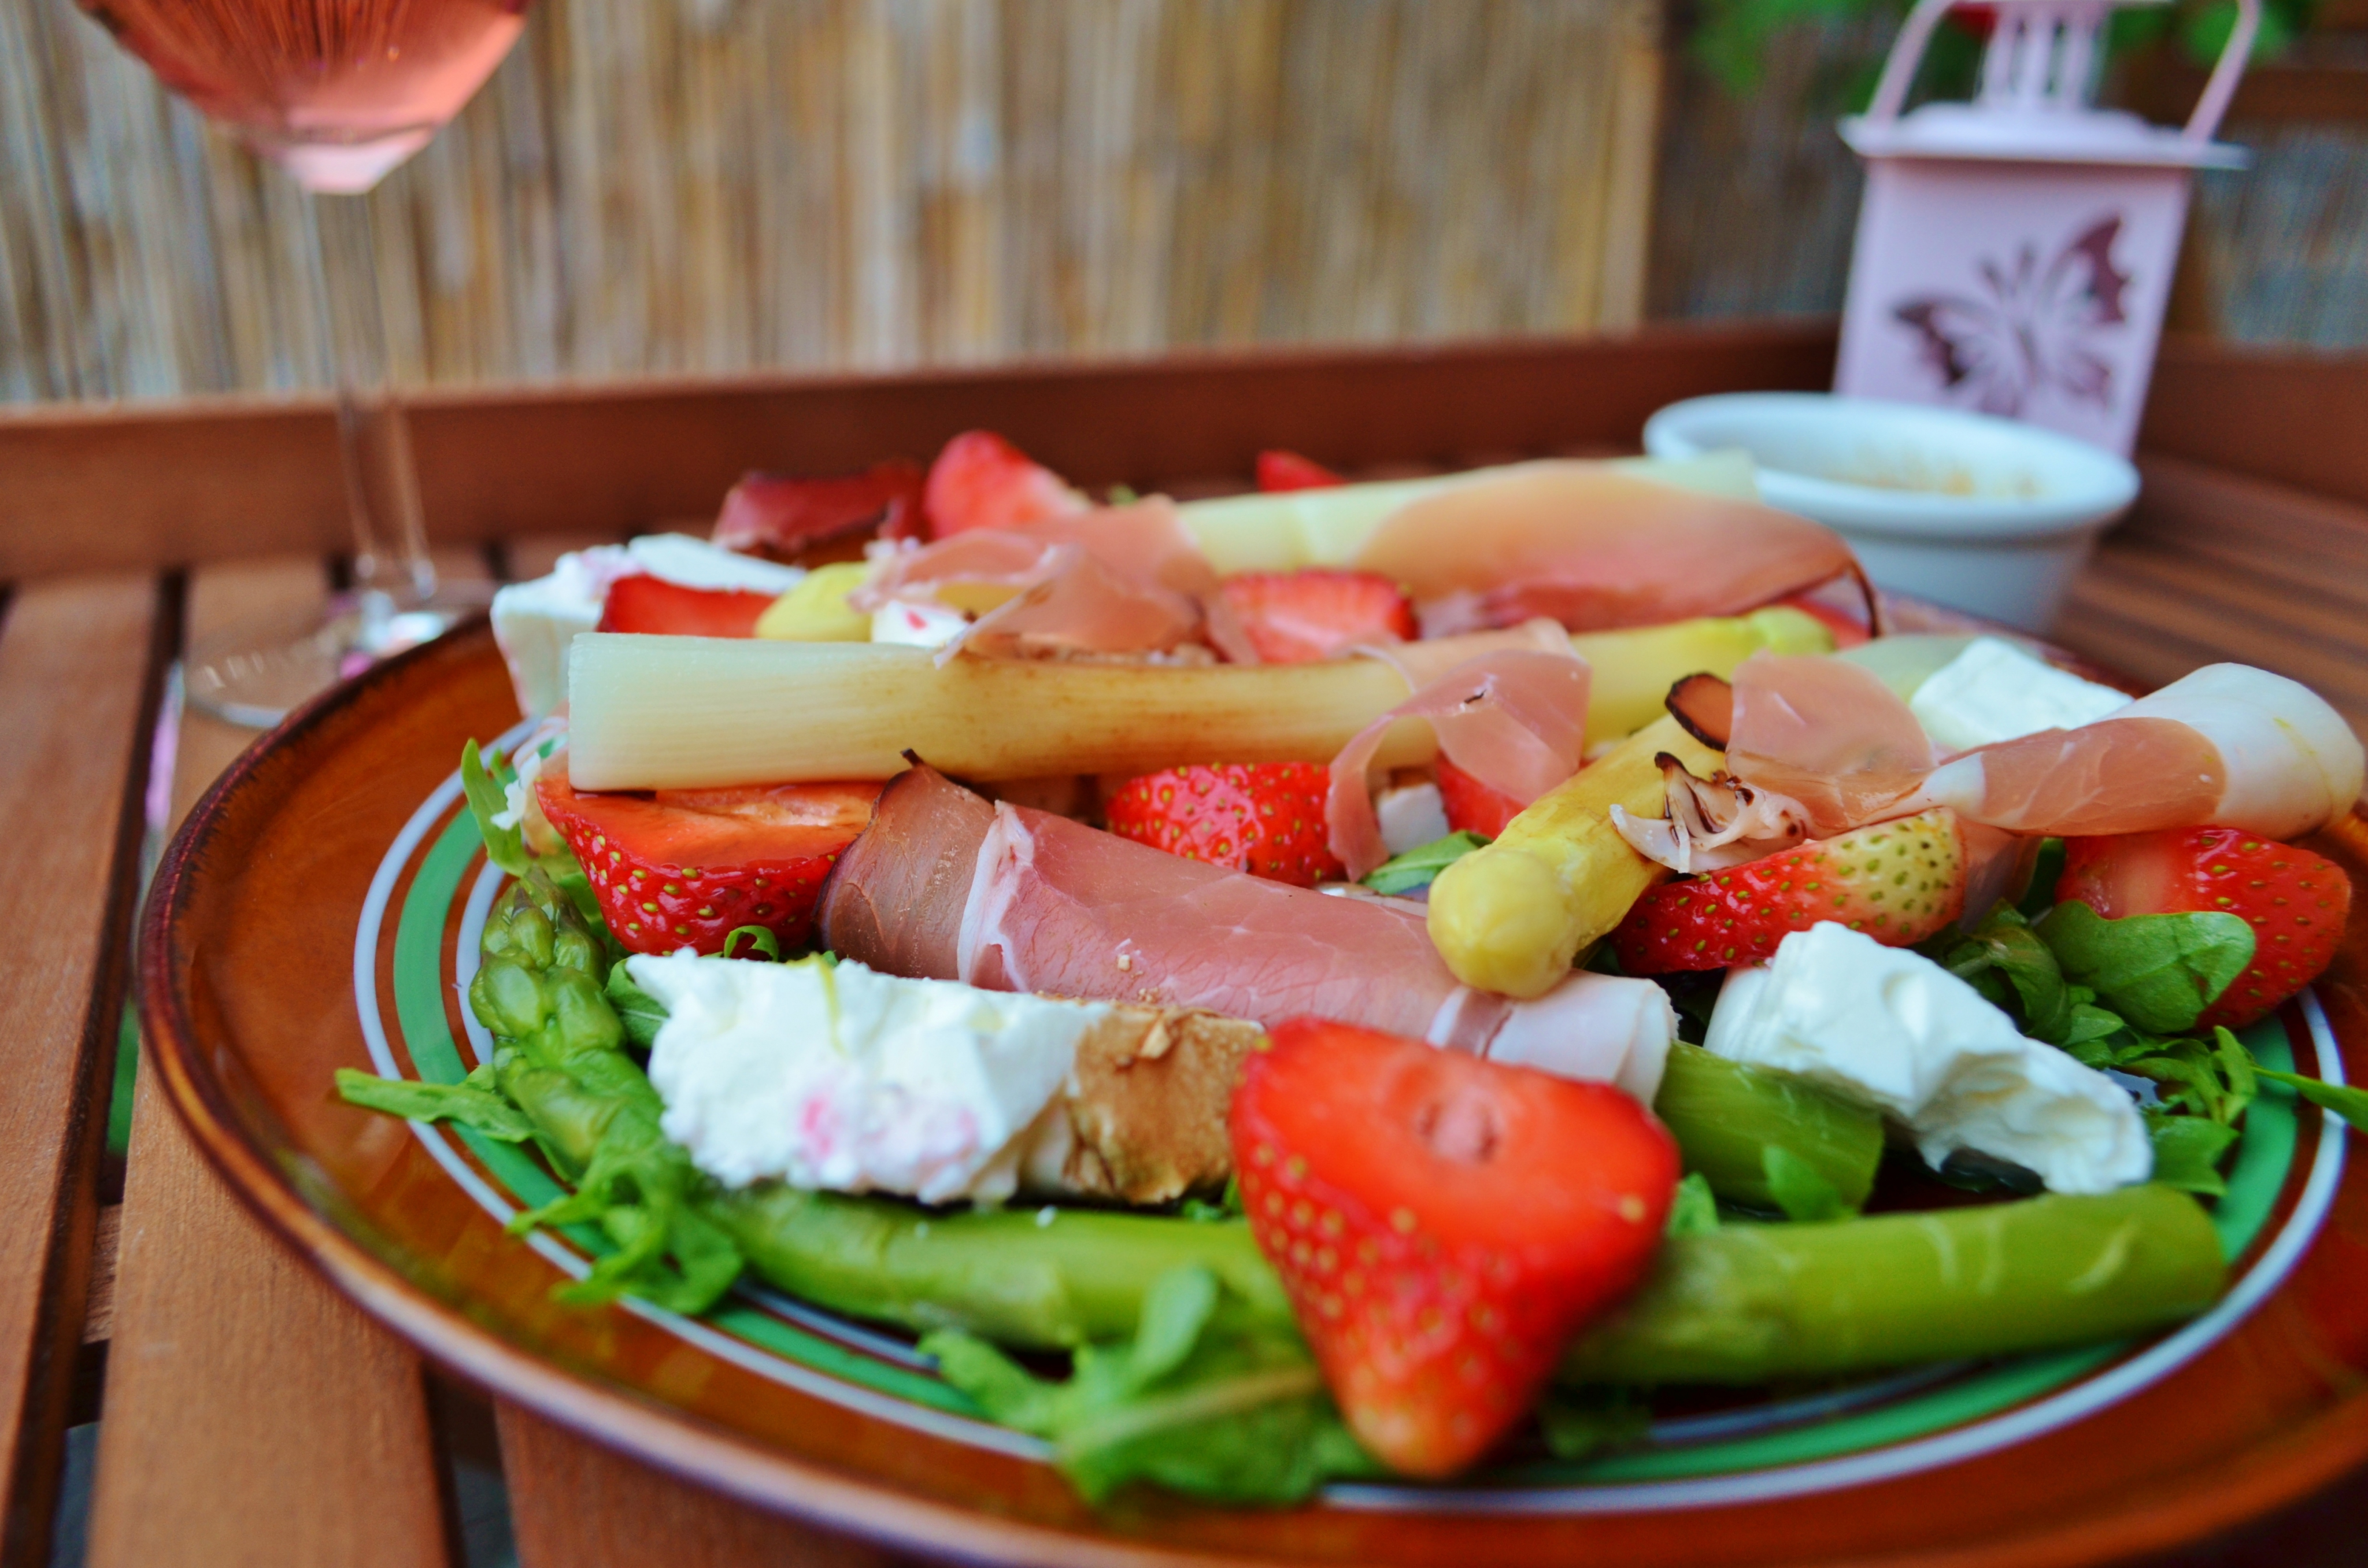 Asparagus with prosciutto, strawberries and goat cheese!